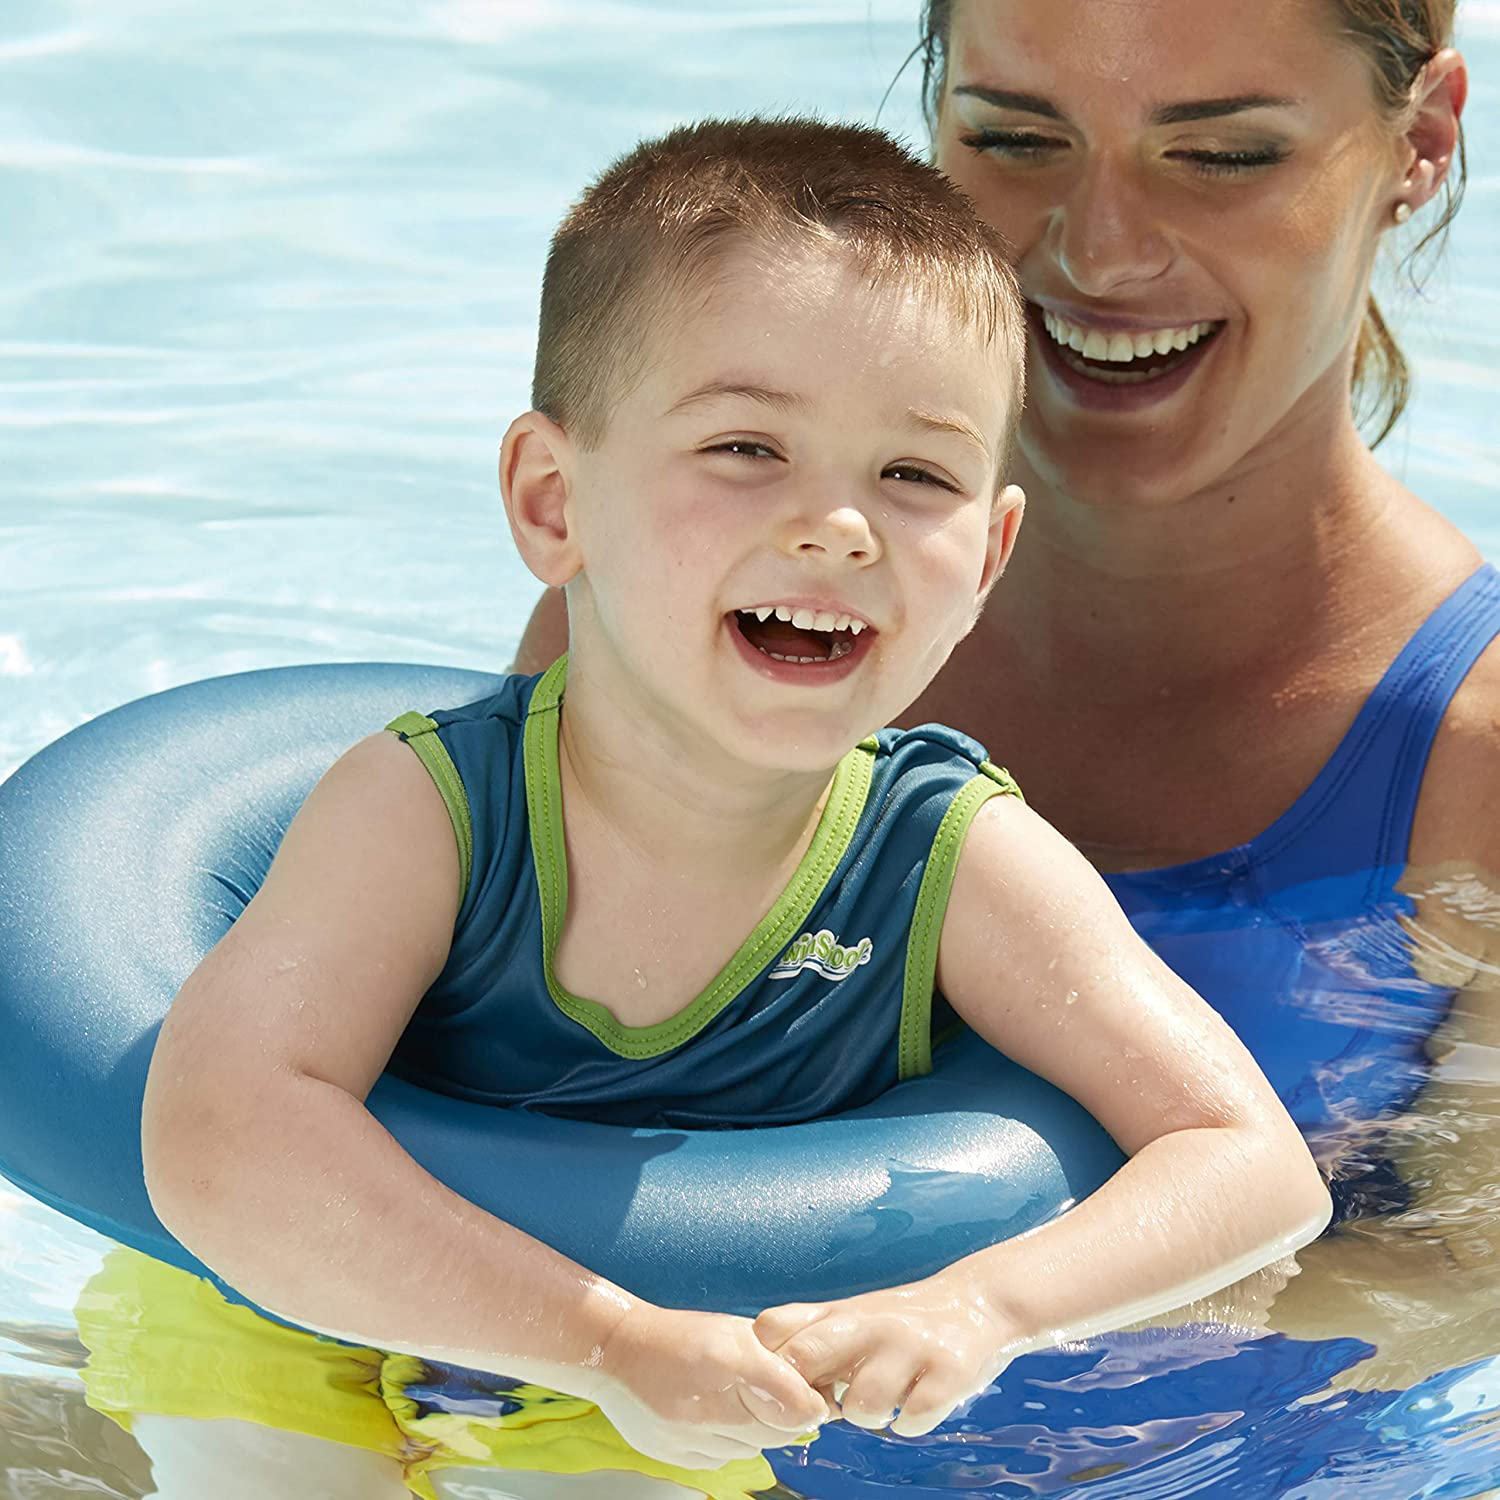 303a68dc931 Amazon.com  SwimSchool Deluxe TOT Swim Trainer Vest and Inflatable Tube  with Adjustable Safety Strap